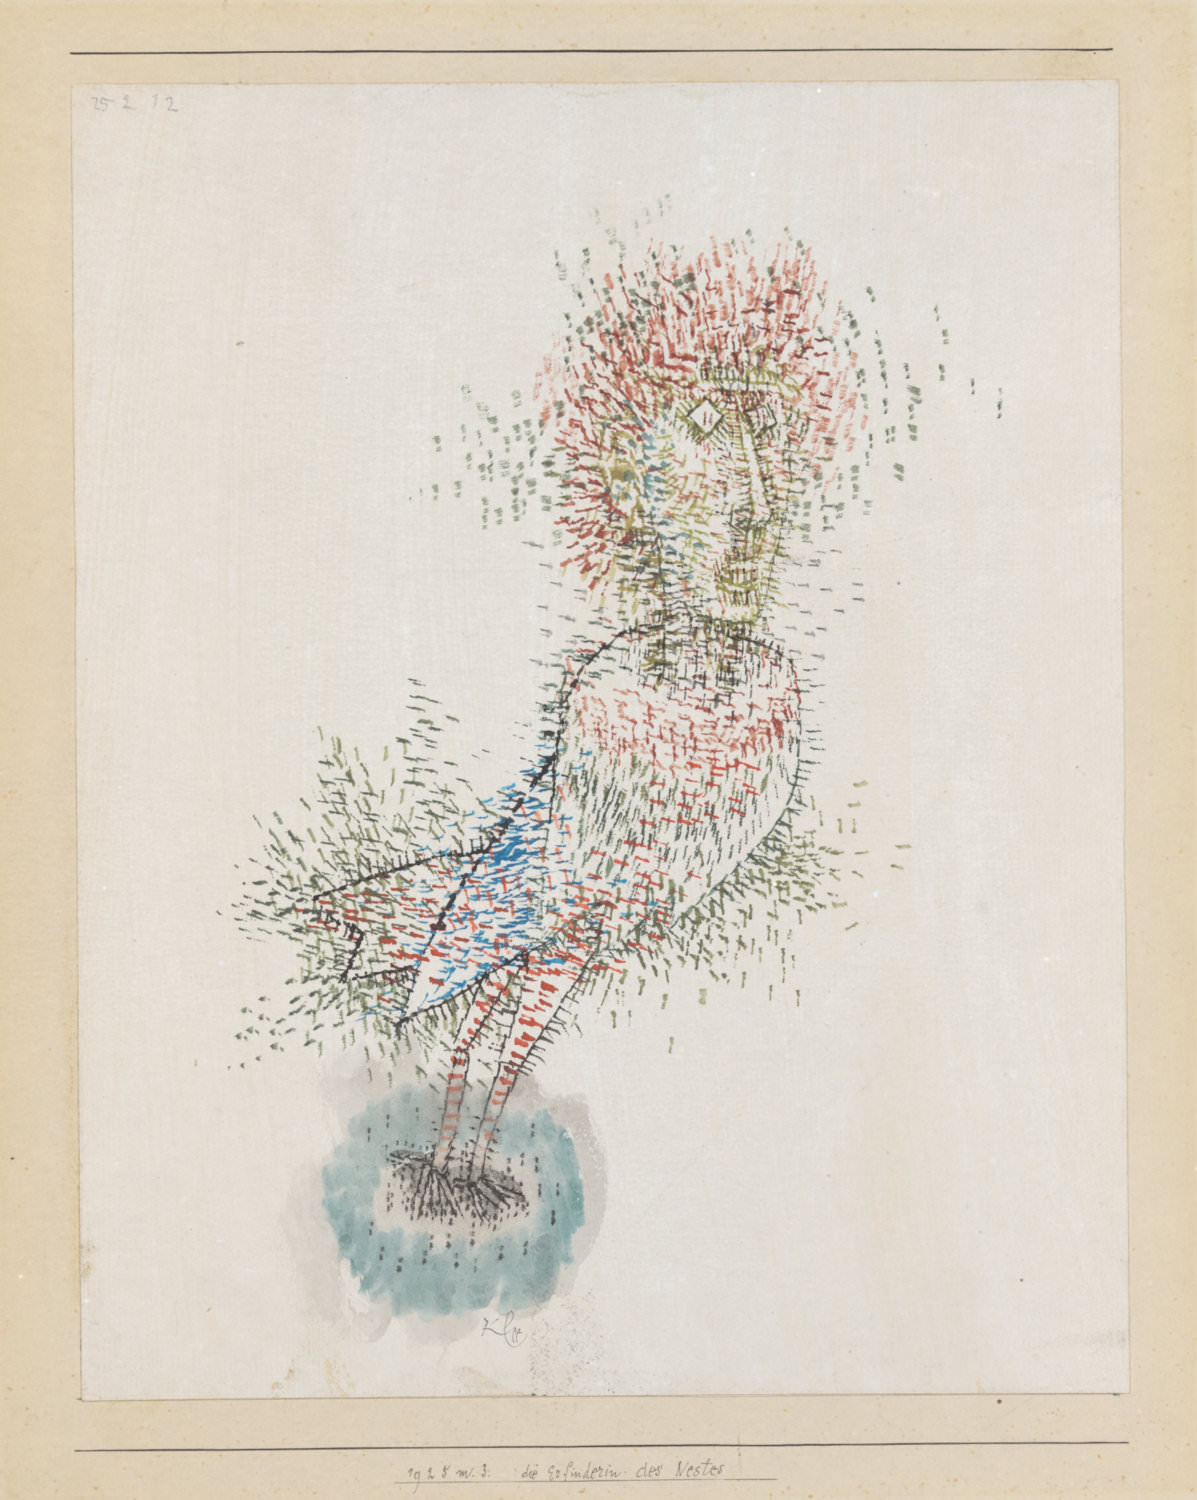 Paul Klee,  die Erfinderin des Nestes , 1925, 33, The Inventress of the Nest watercolour on primed paper on cardboard, 27,6 x 22 cm, Zentrum Paul Klee, Bern, Leihgabe aus Privatbesitz © Zentrum Paul Klee, Bern, Bildarchiv